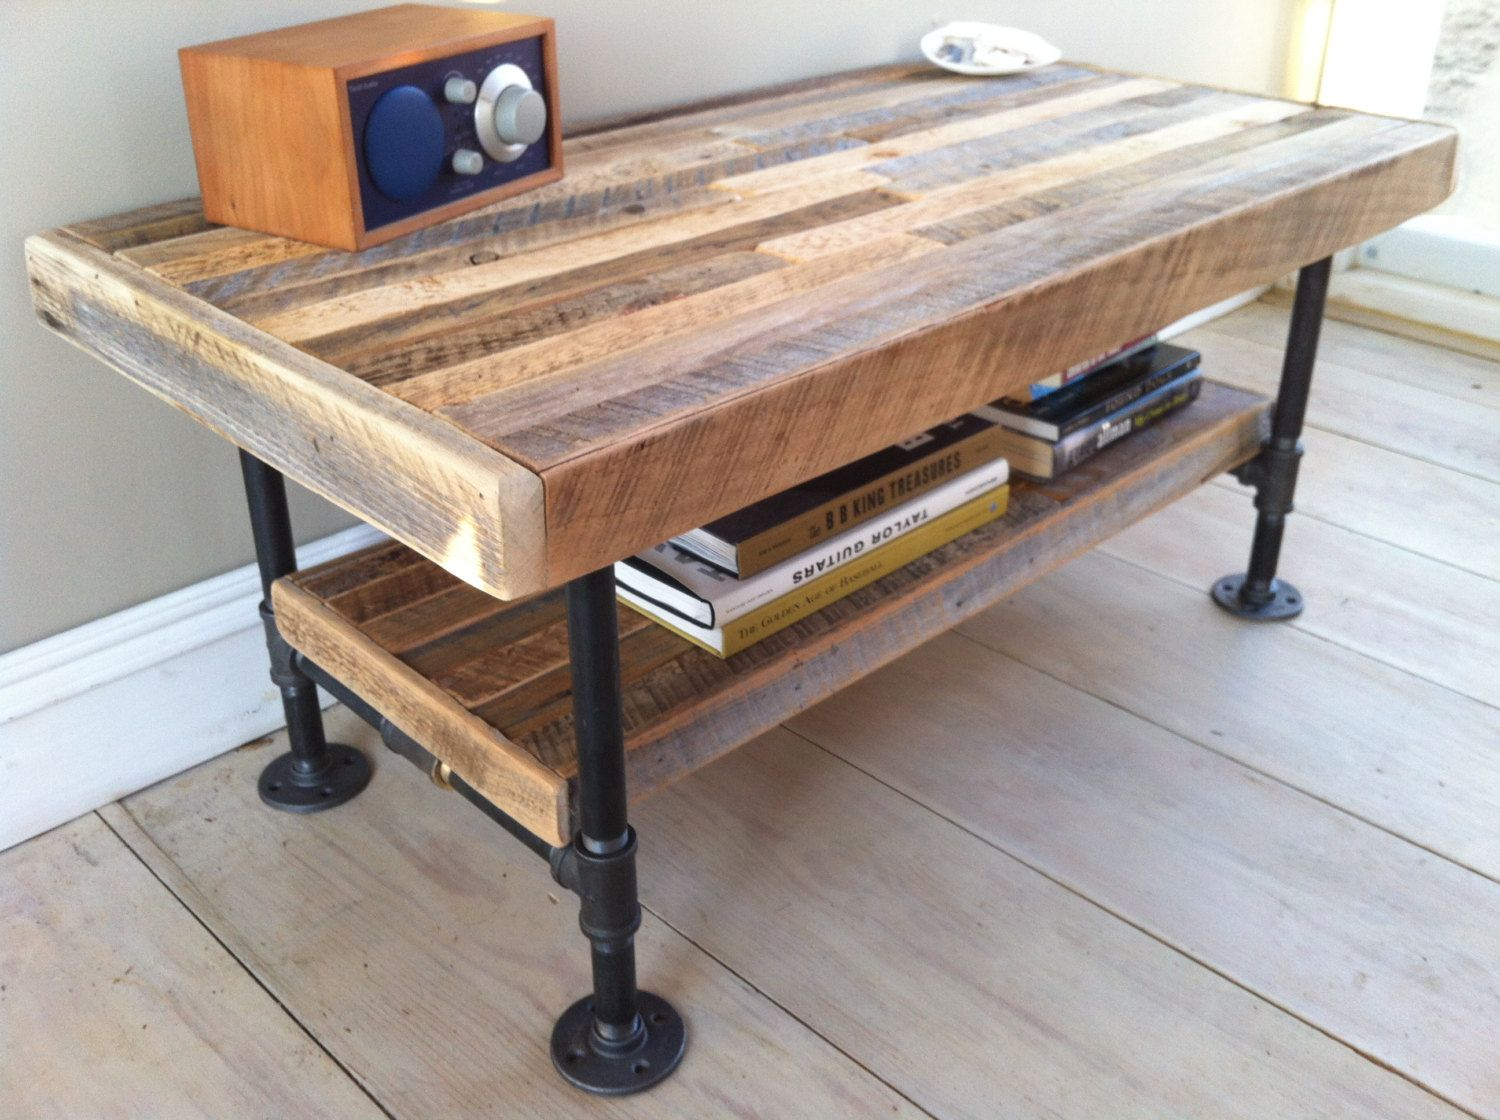 Industrial Wood Steel Coffee Table Or Media Stand Reclaimed Barnwood With Industrial Pipe